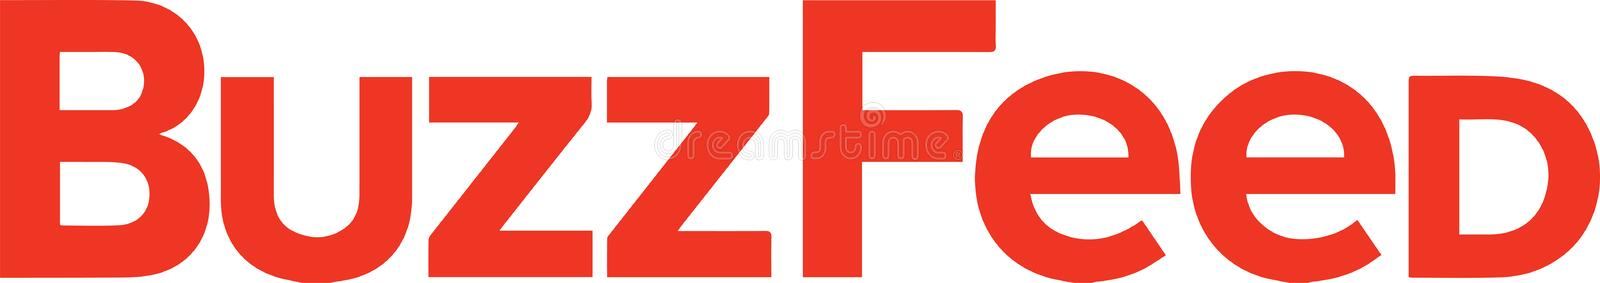 BuzzFeed logo news. BuzzFeed, Inc. is an American Internet media, news and entertainment company with a focus on digital media based in New York City. BuzzFeed stock illustration